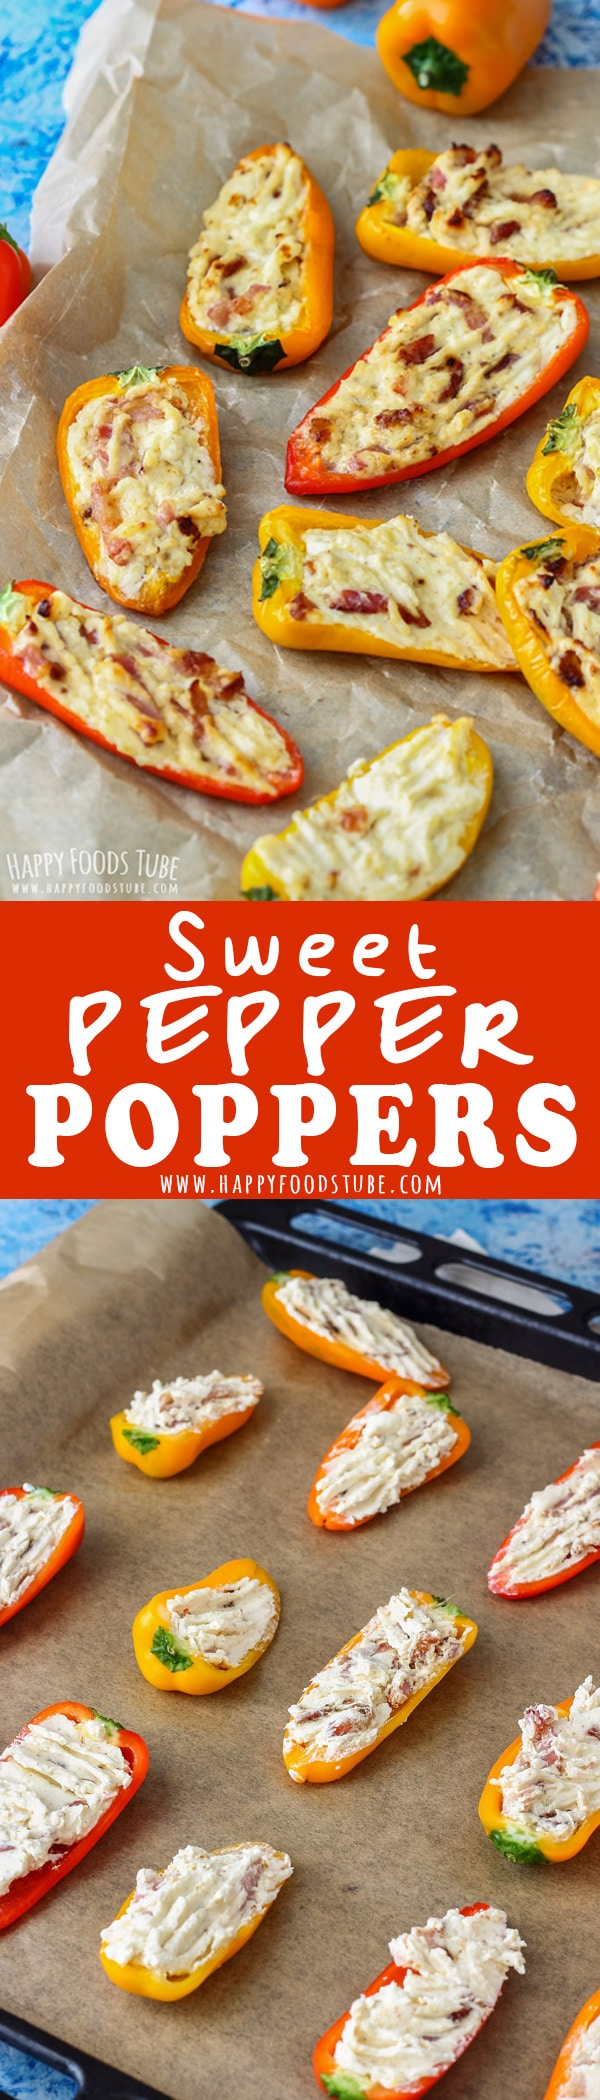 These Sweet Pepper Poppers are the perfect appetizers for parties and family gatherings. Ready in 30 minutes this oven baked party food is easy to make and tastes amazing. #pepper #poppers #party #food #recipe #bacon #cheese #stuffed #appetizers